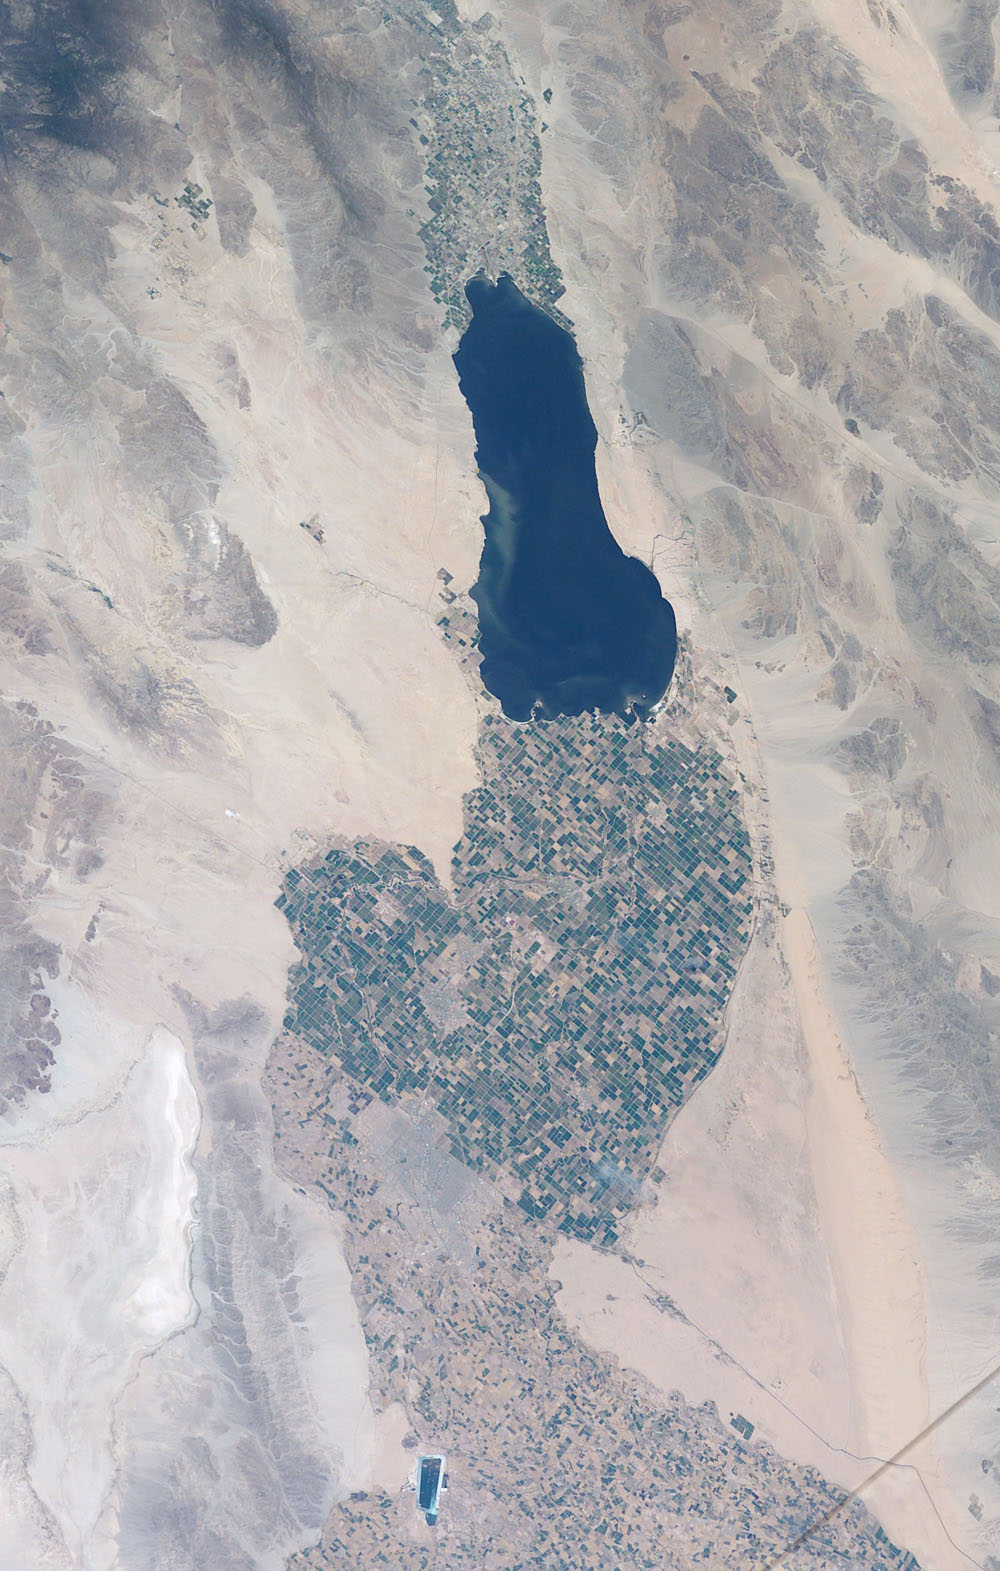 Imperial Valley and Salton Sea, California - related image preview